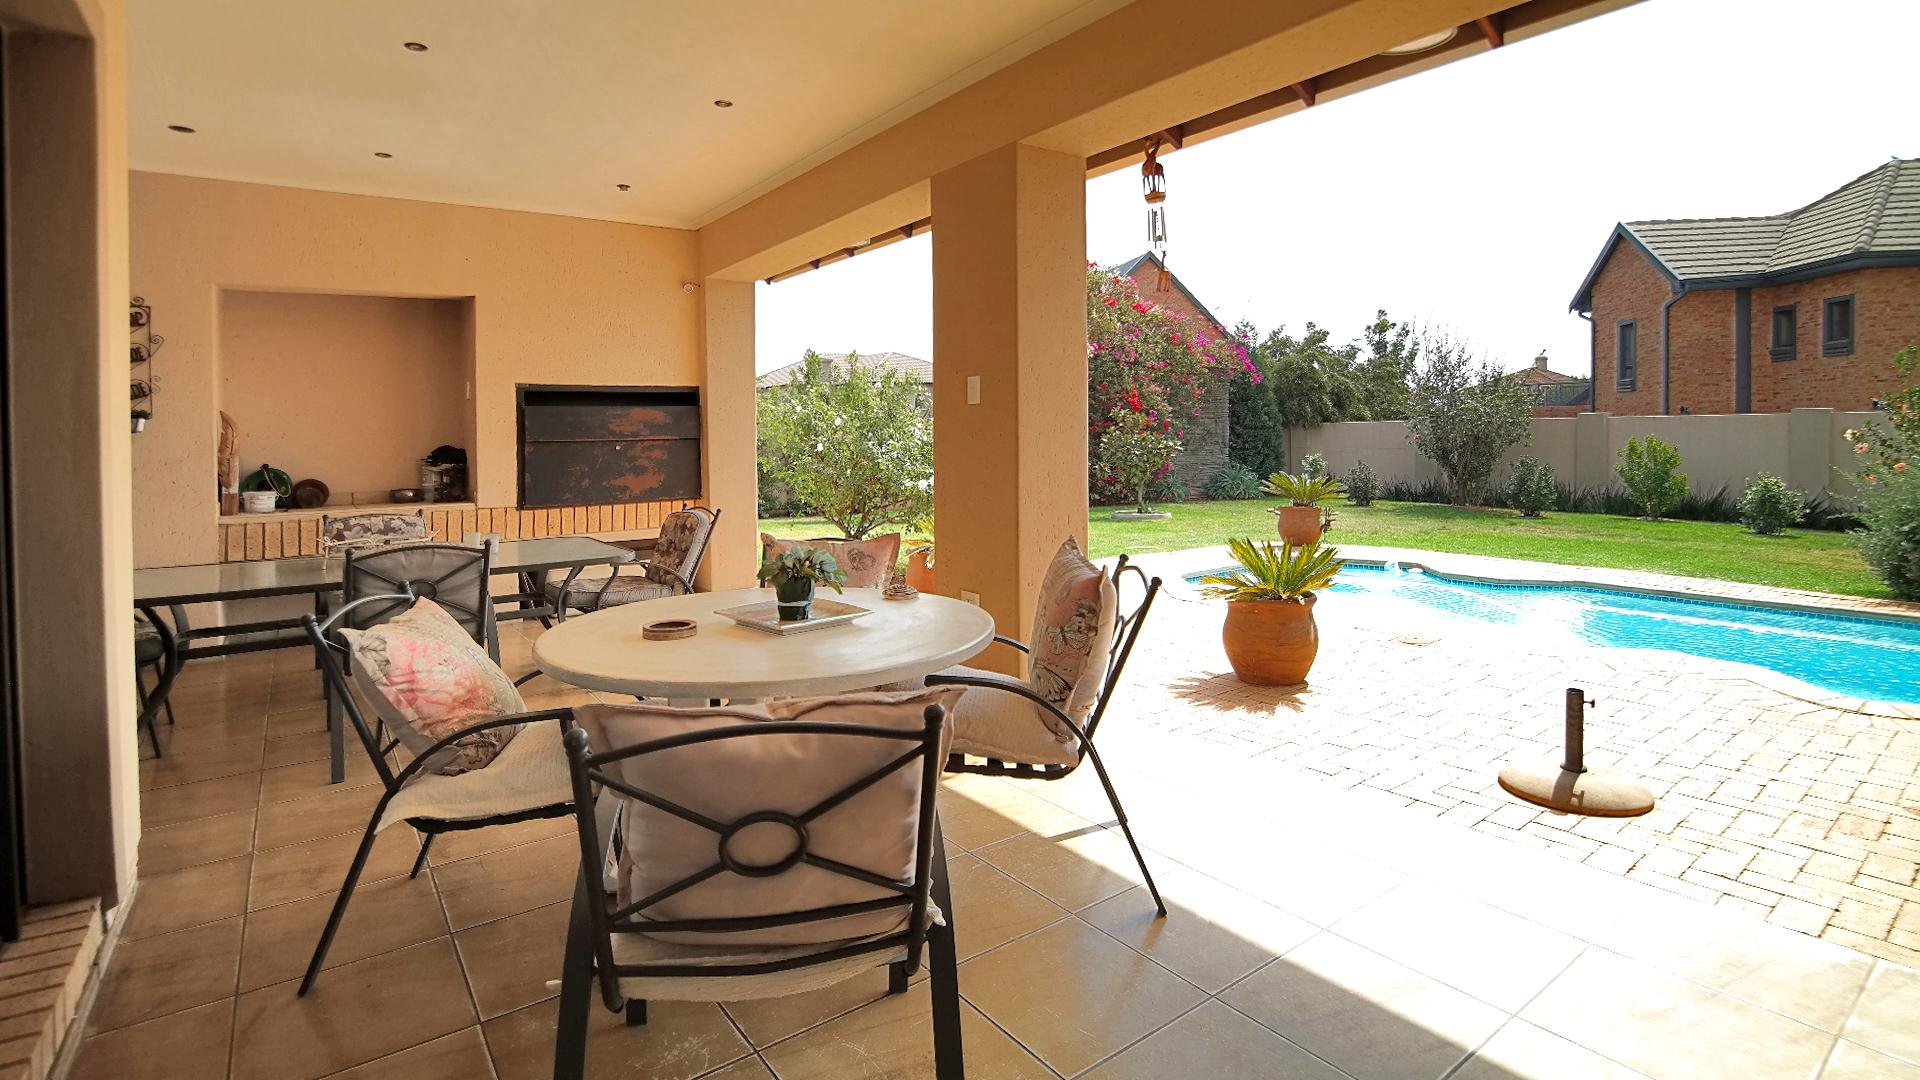 3 Bedroom House for sale in Montana ENT0066308 : photo#5